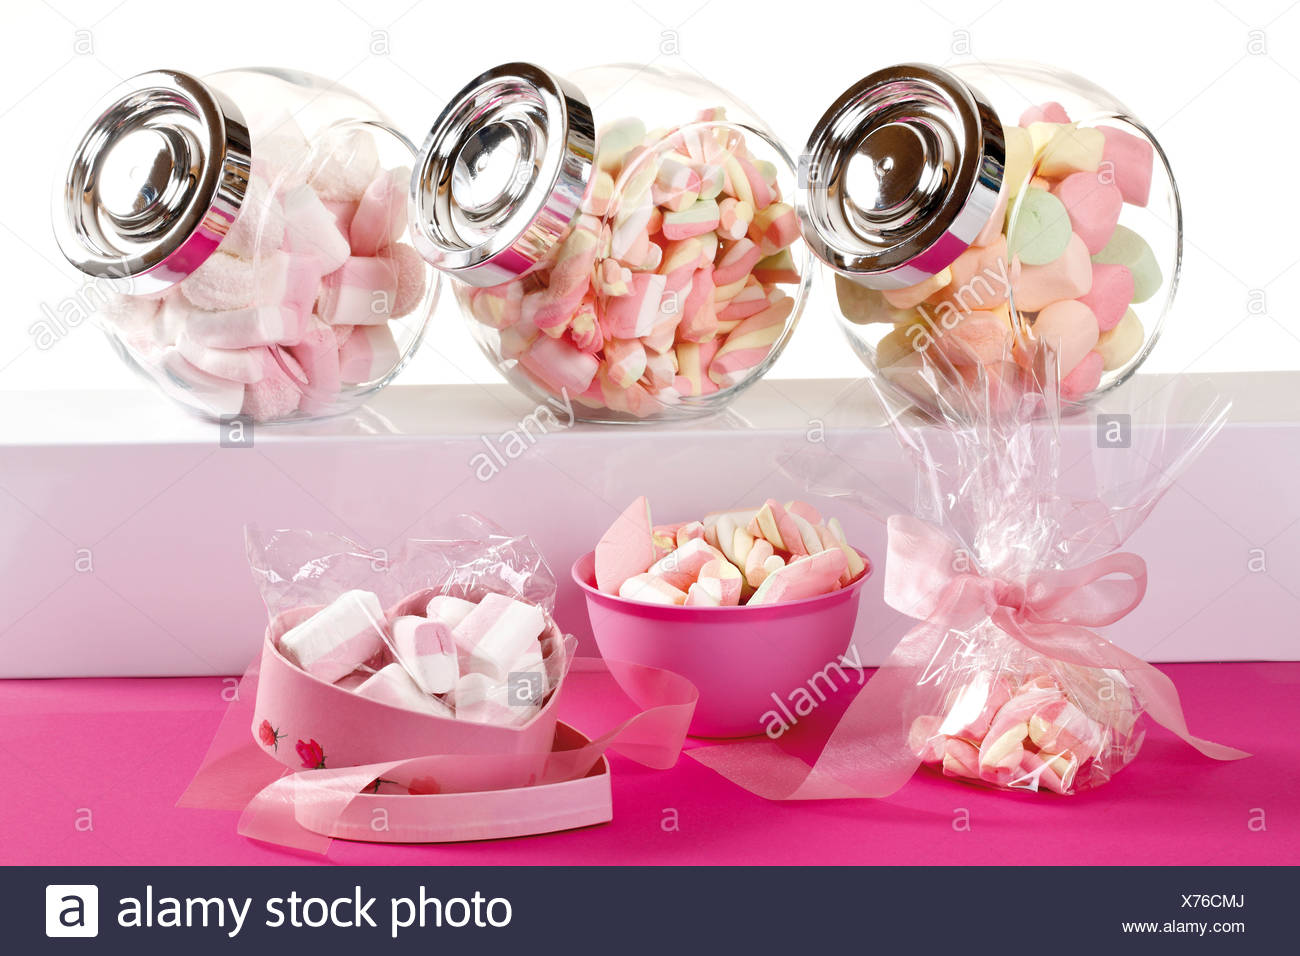 Candy In Jars Stock Photos & Candy In Jars Stock Images - Alamy